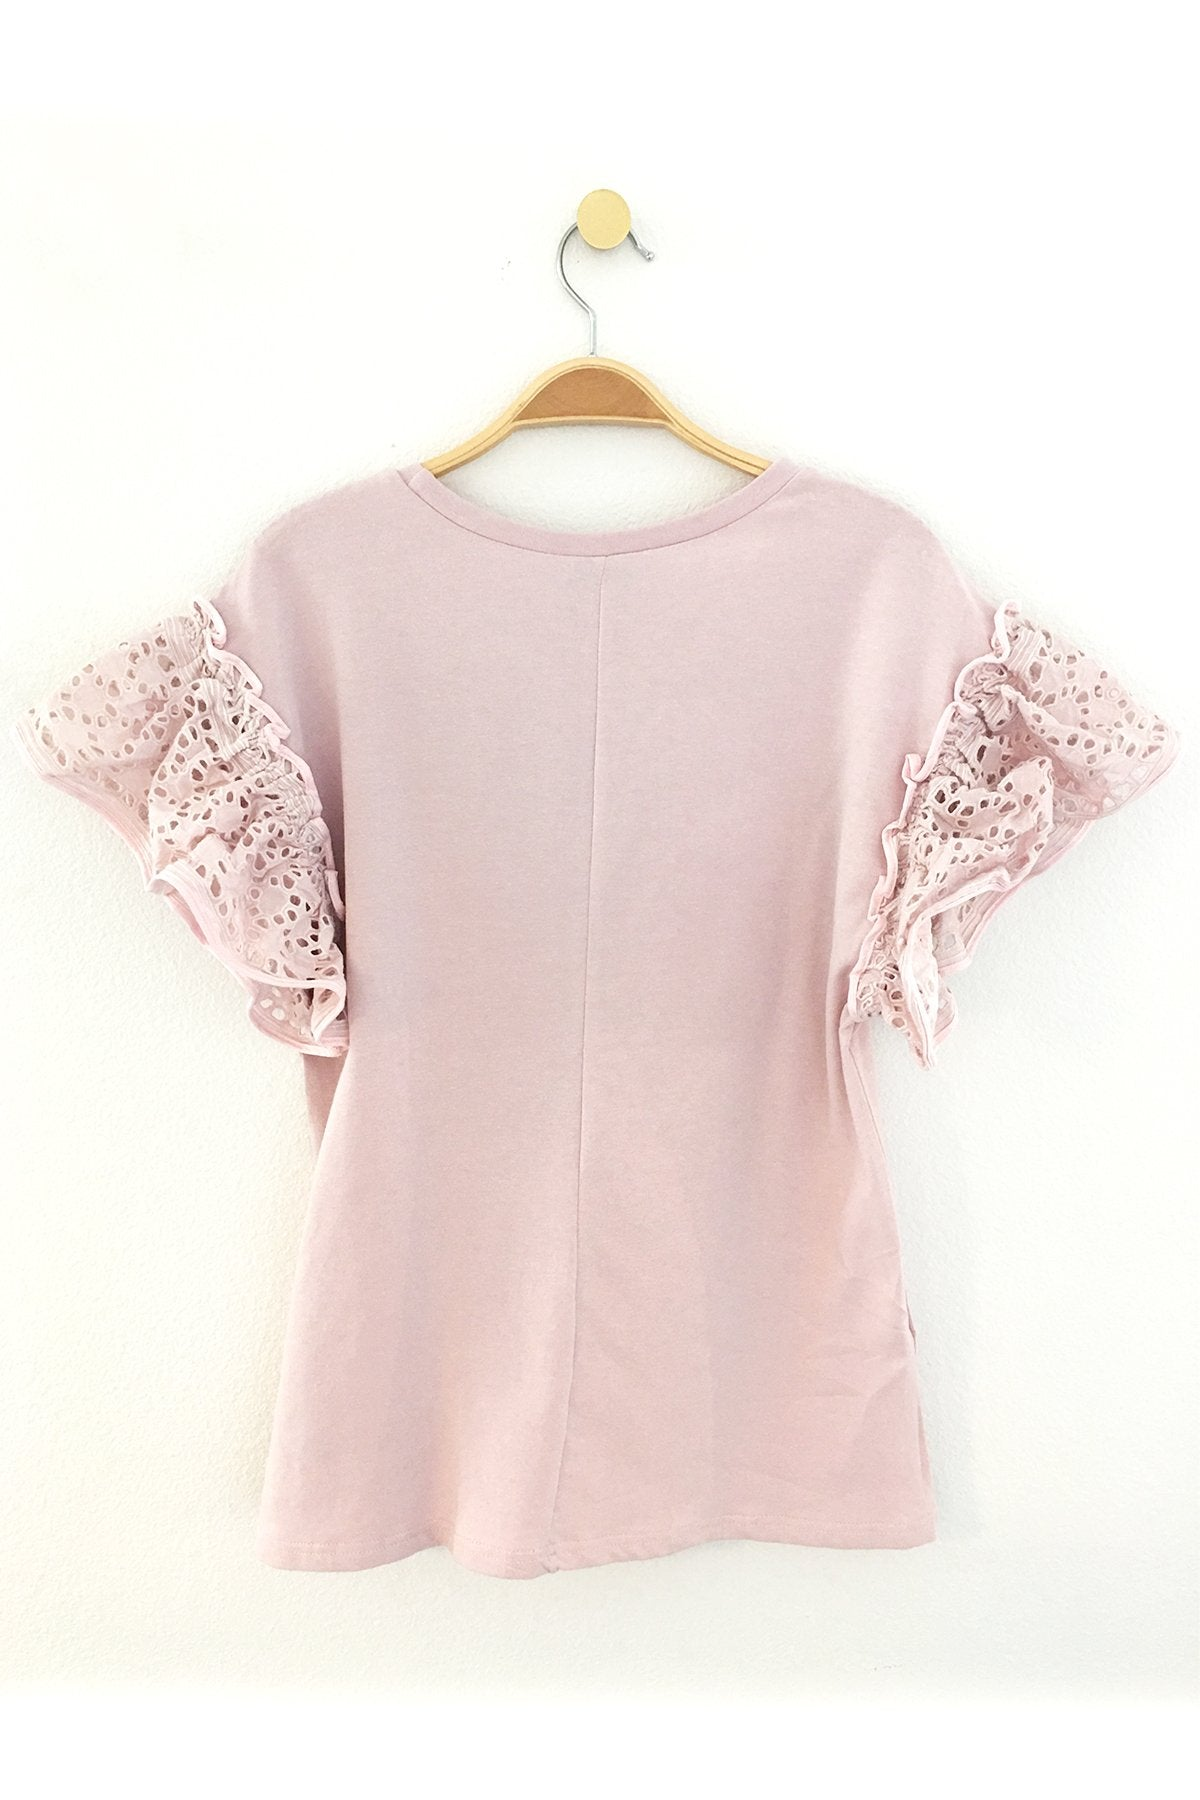 A New Story Top in Blush